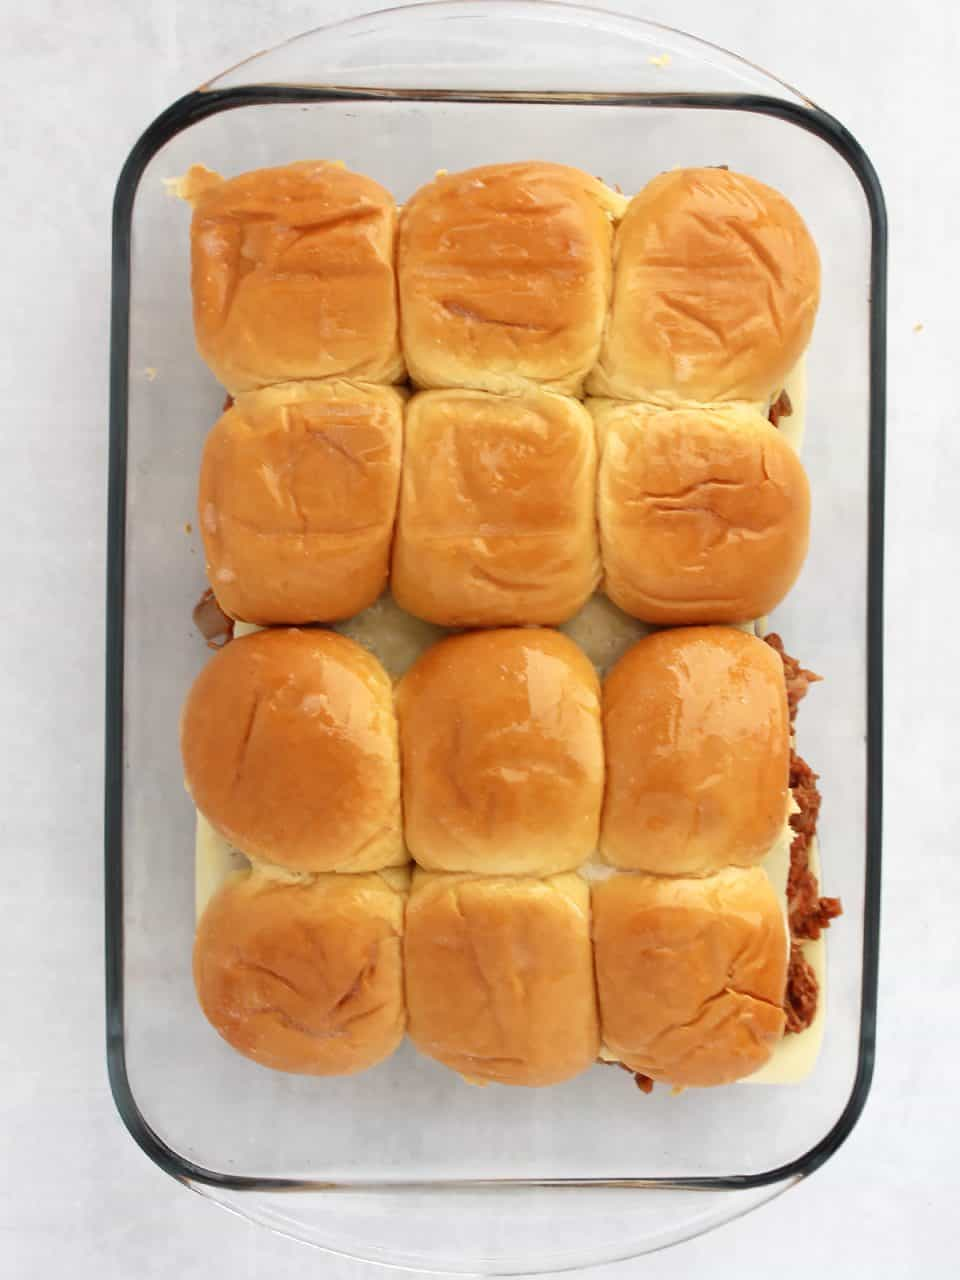 The top of the buns added to the sliders and ready to be baked.